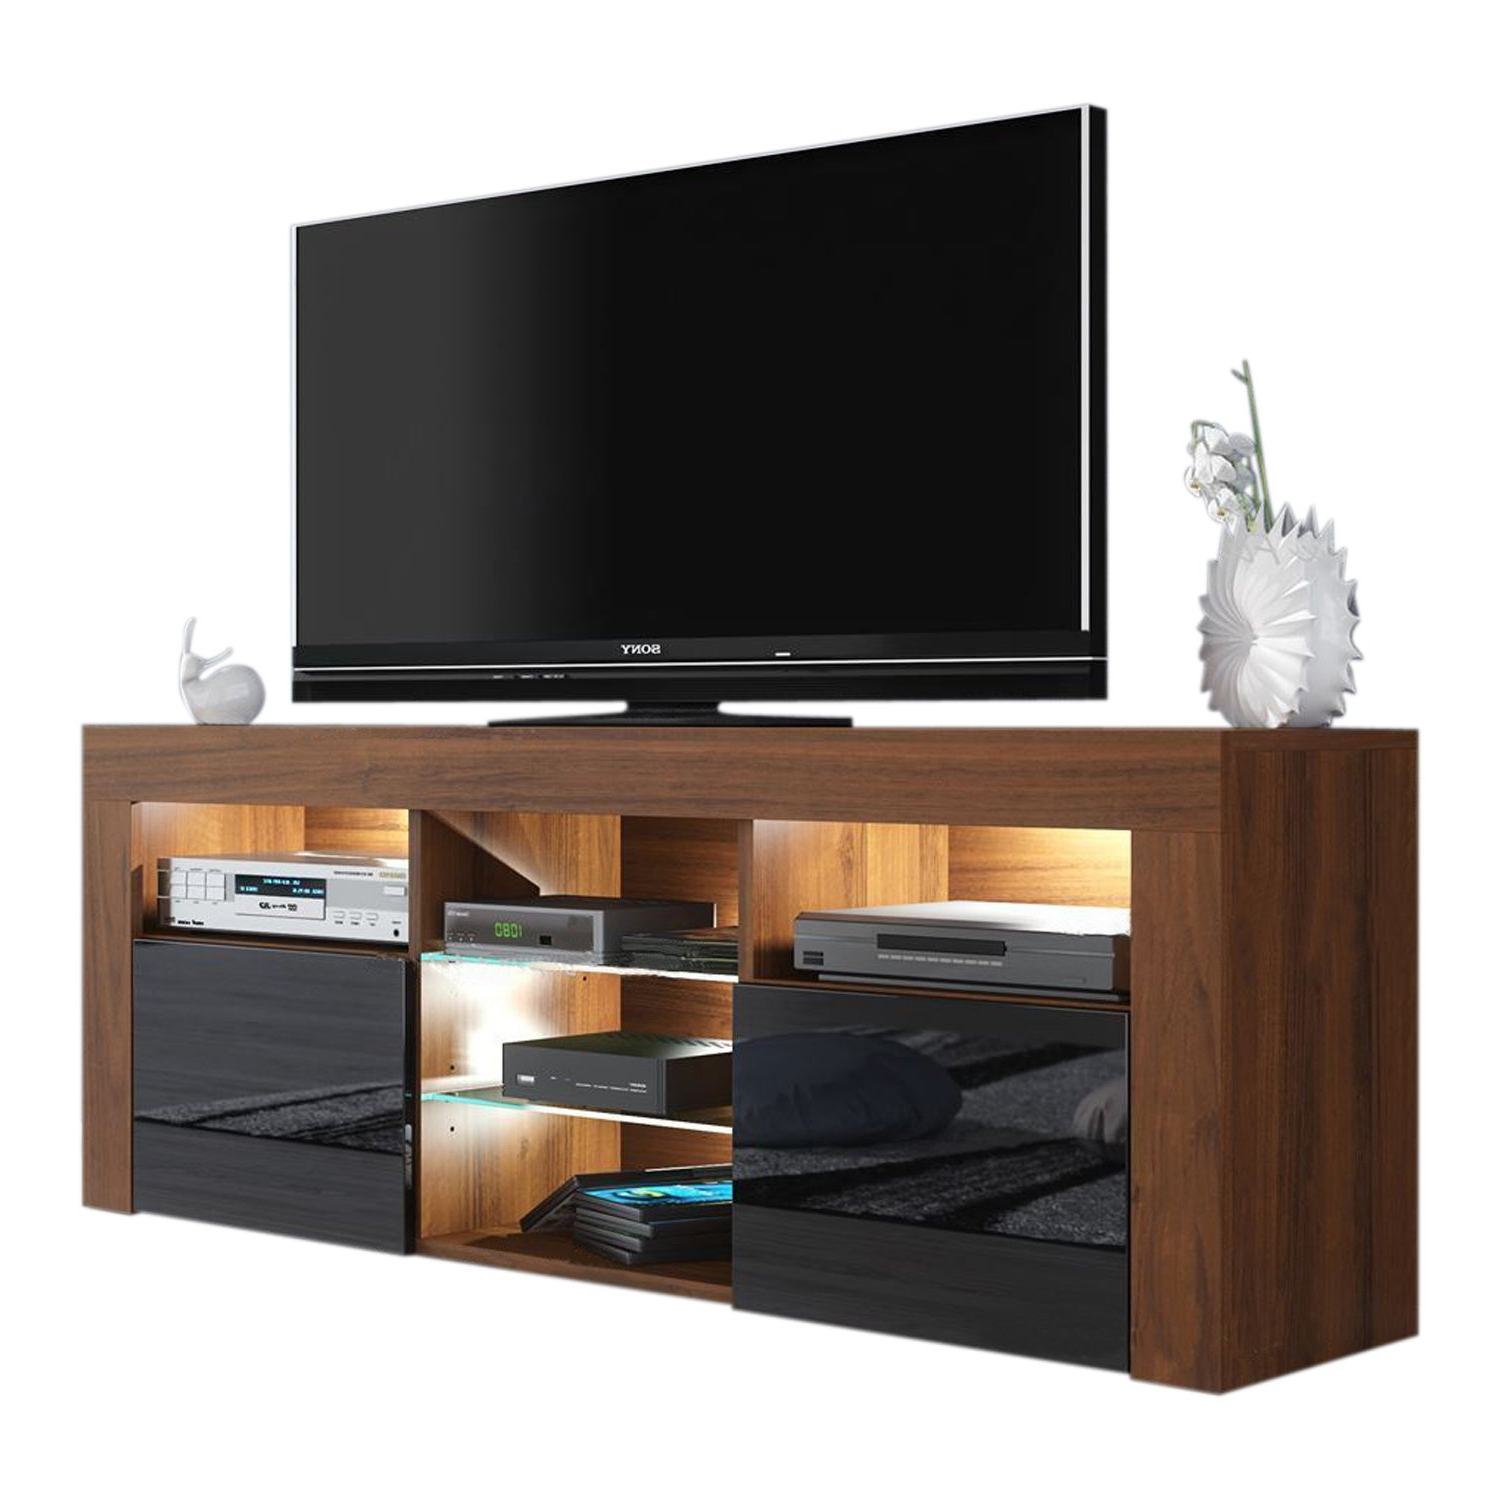 Walnut And Black Gloss Tv Units Pertaining To Popular Cheap High Gloss Walnut Tv Unit, Find High Gloss Walnut Tv Unit (View 9 of 20)